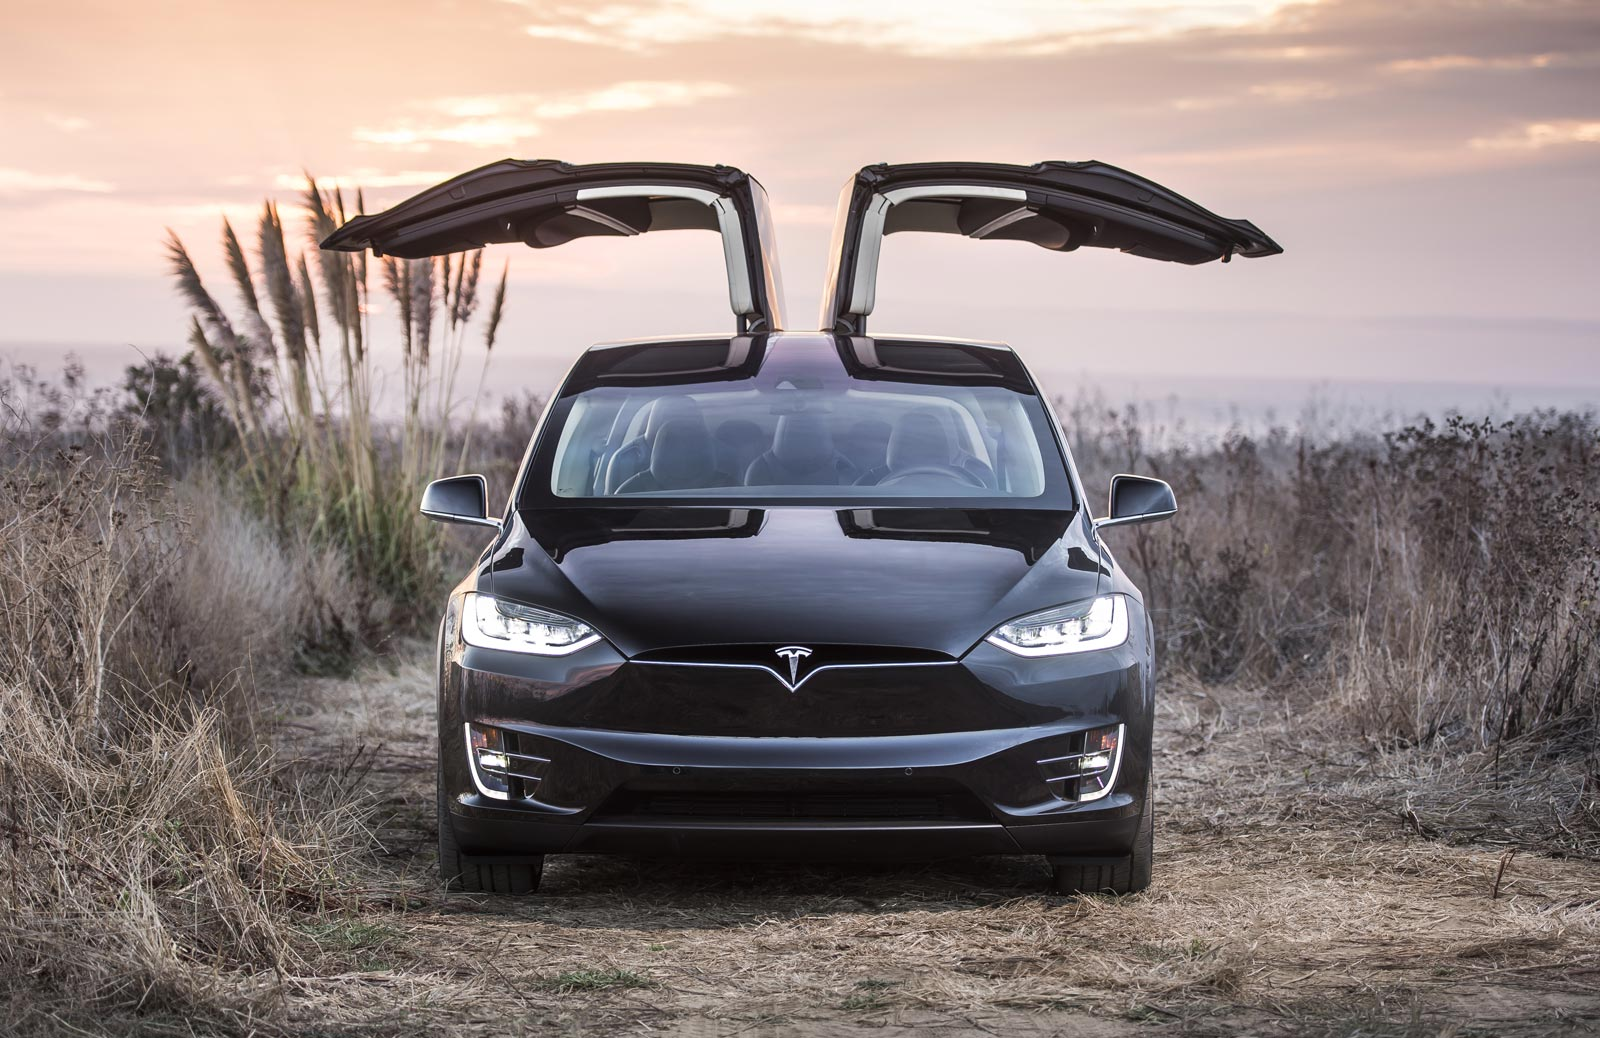 Photograph of Tesla Model X